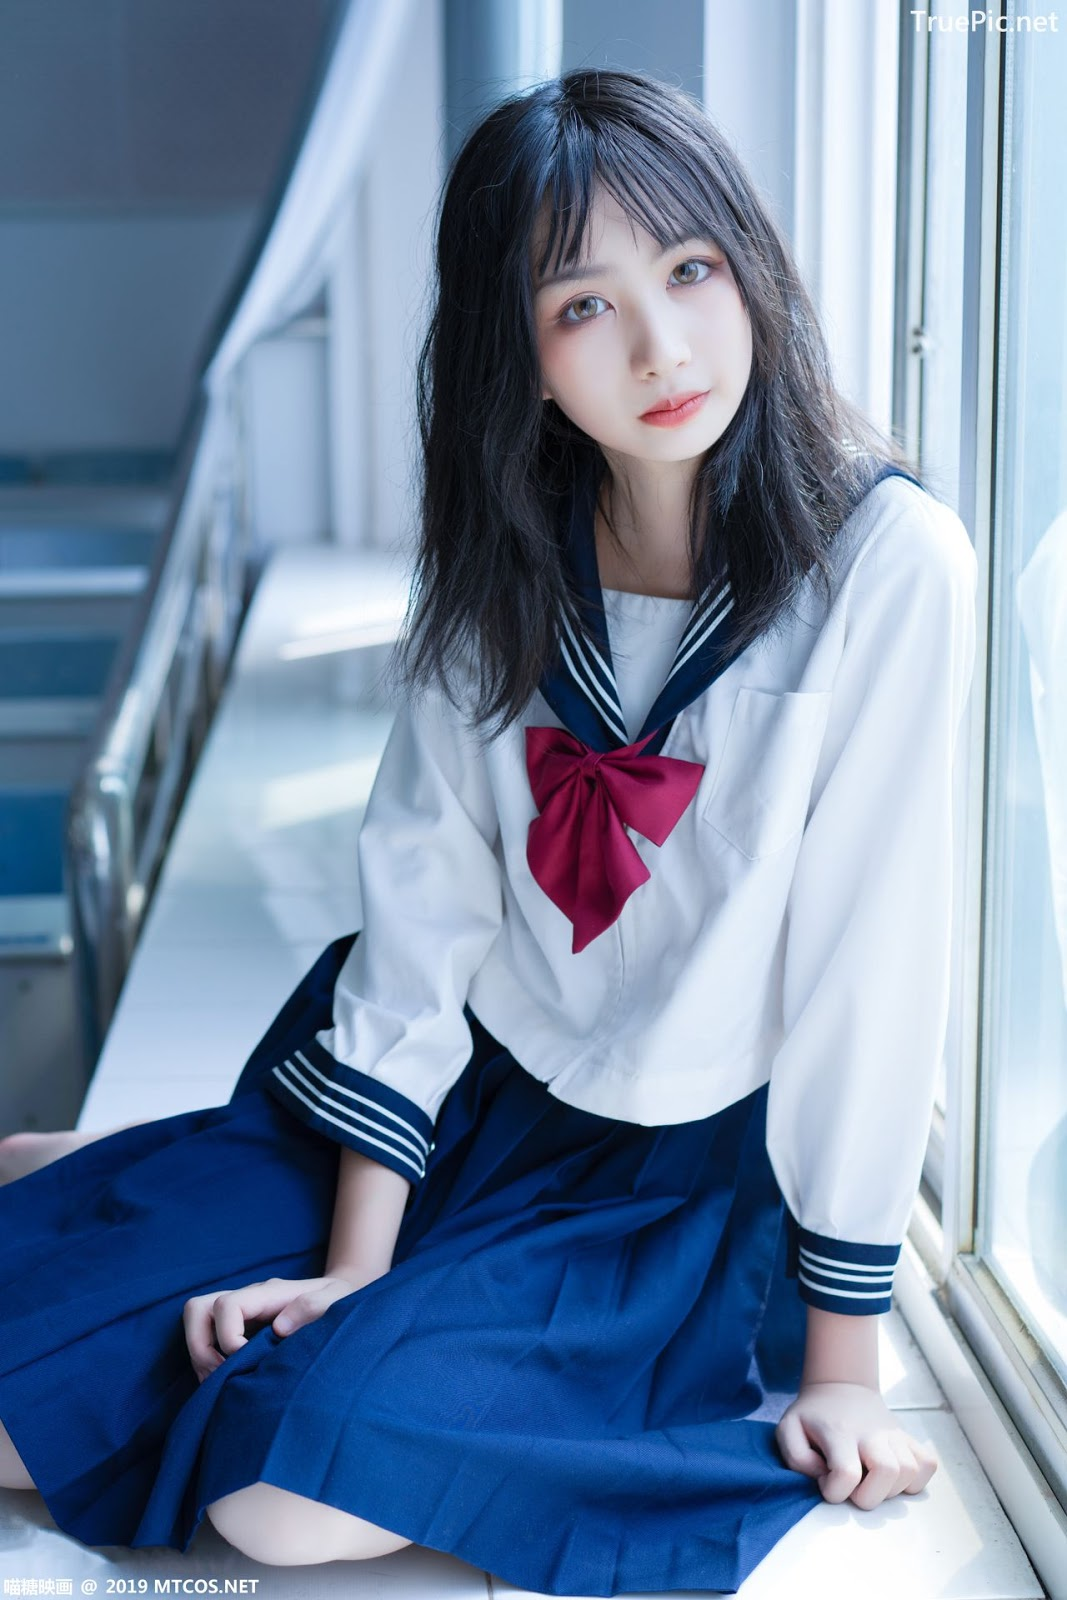 Image MTCos 喵糖映画 Vol.014 – Chinese Cute Model With Japanese School Uniform - TruePic.net- Picture-1